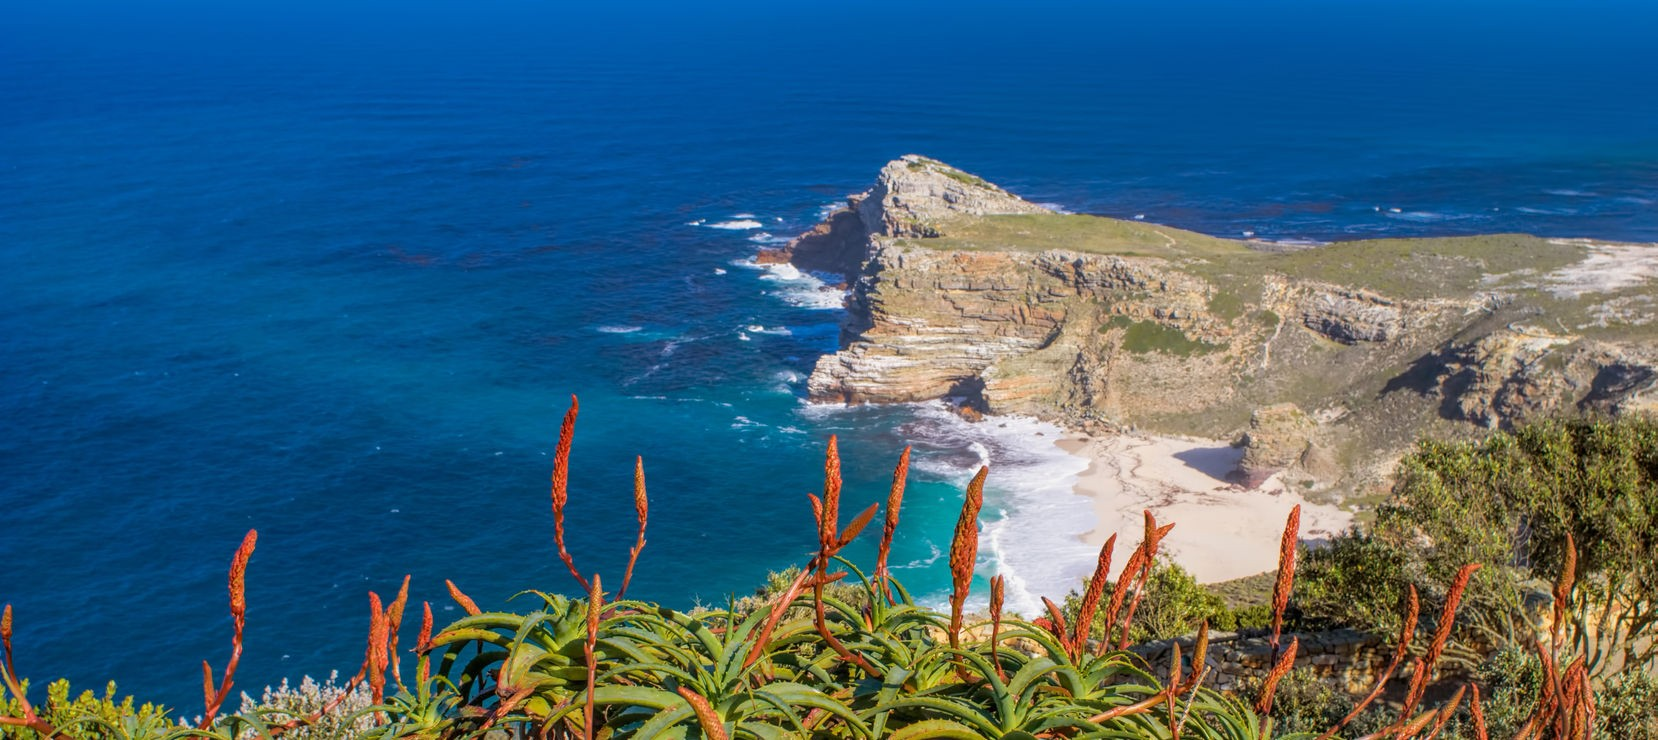 Aloes at Cape of Good Hope